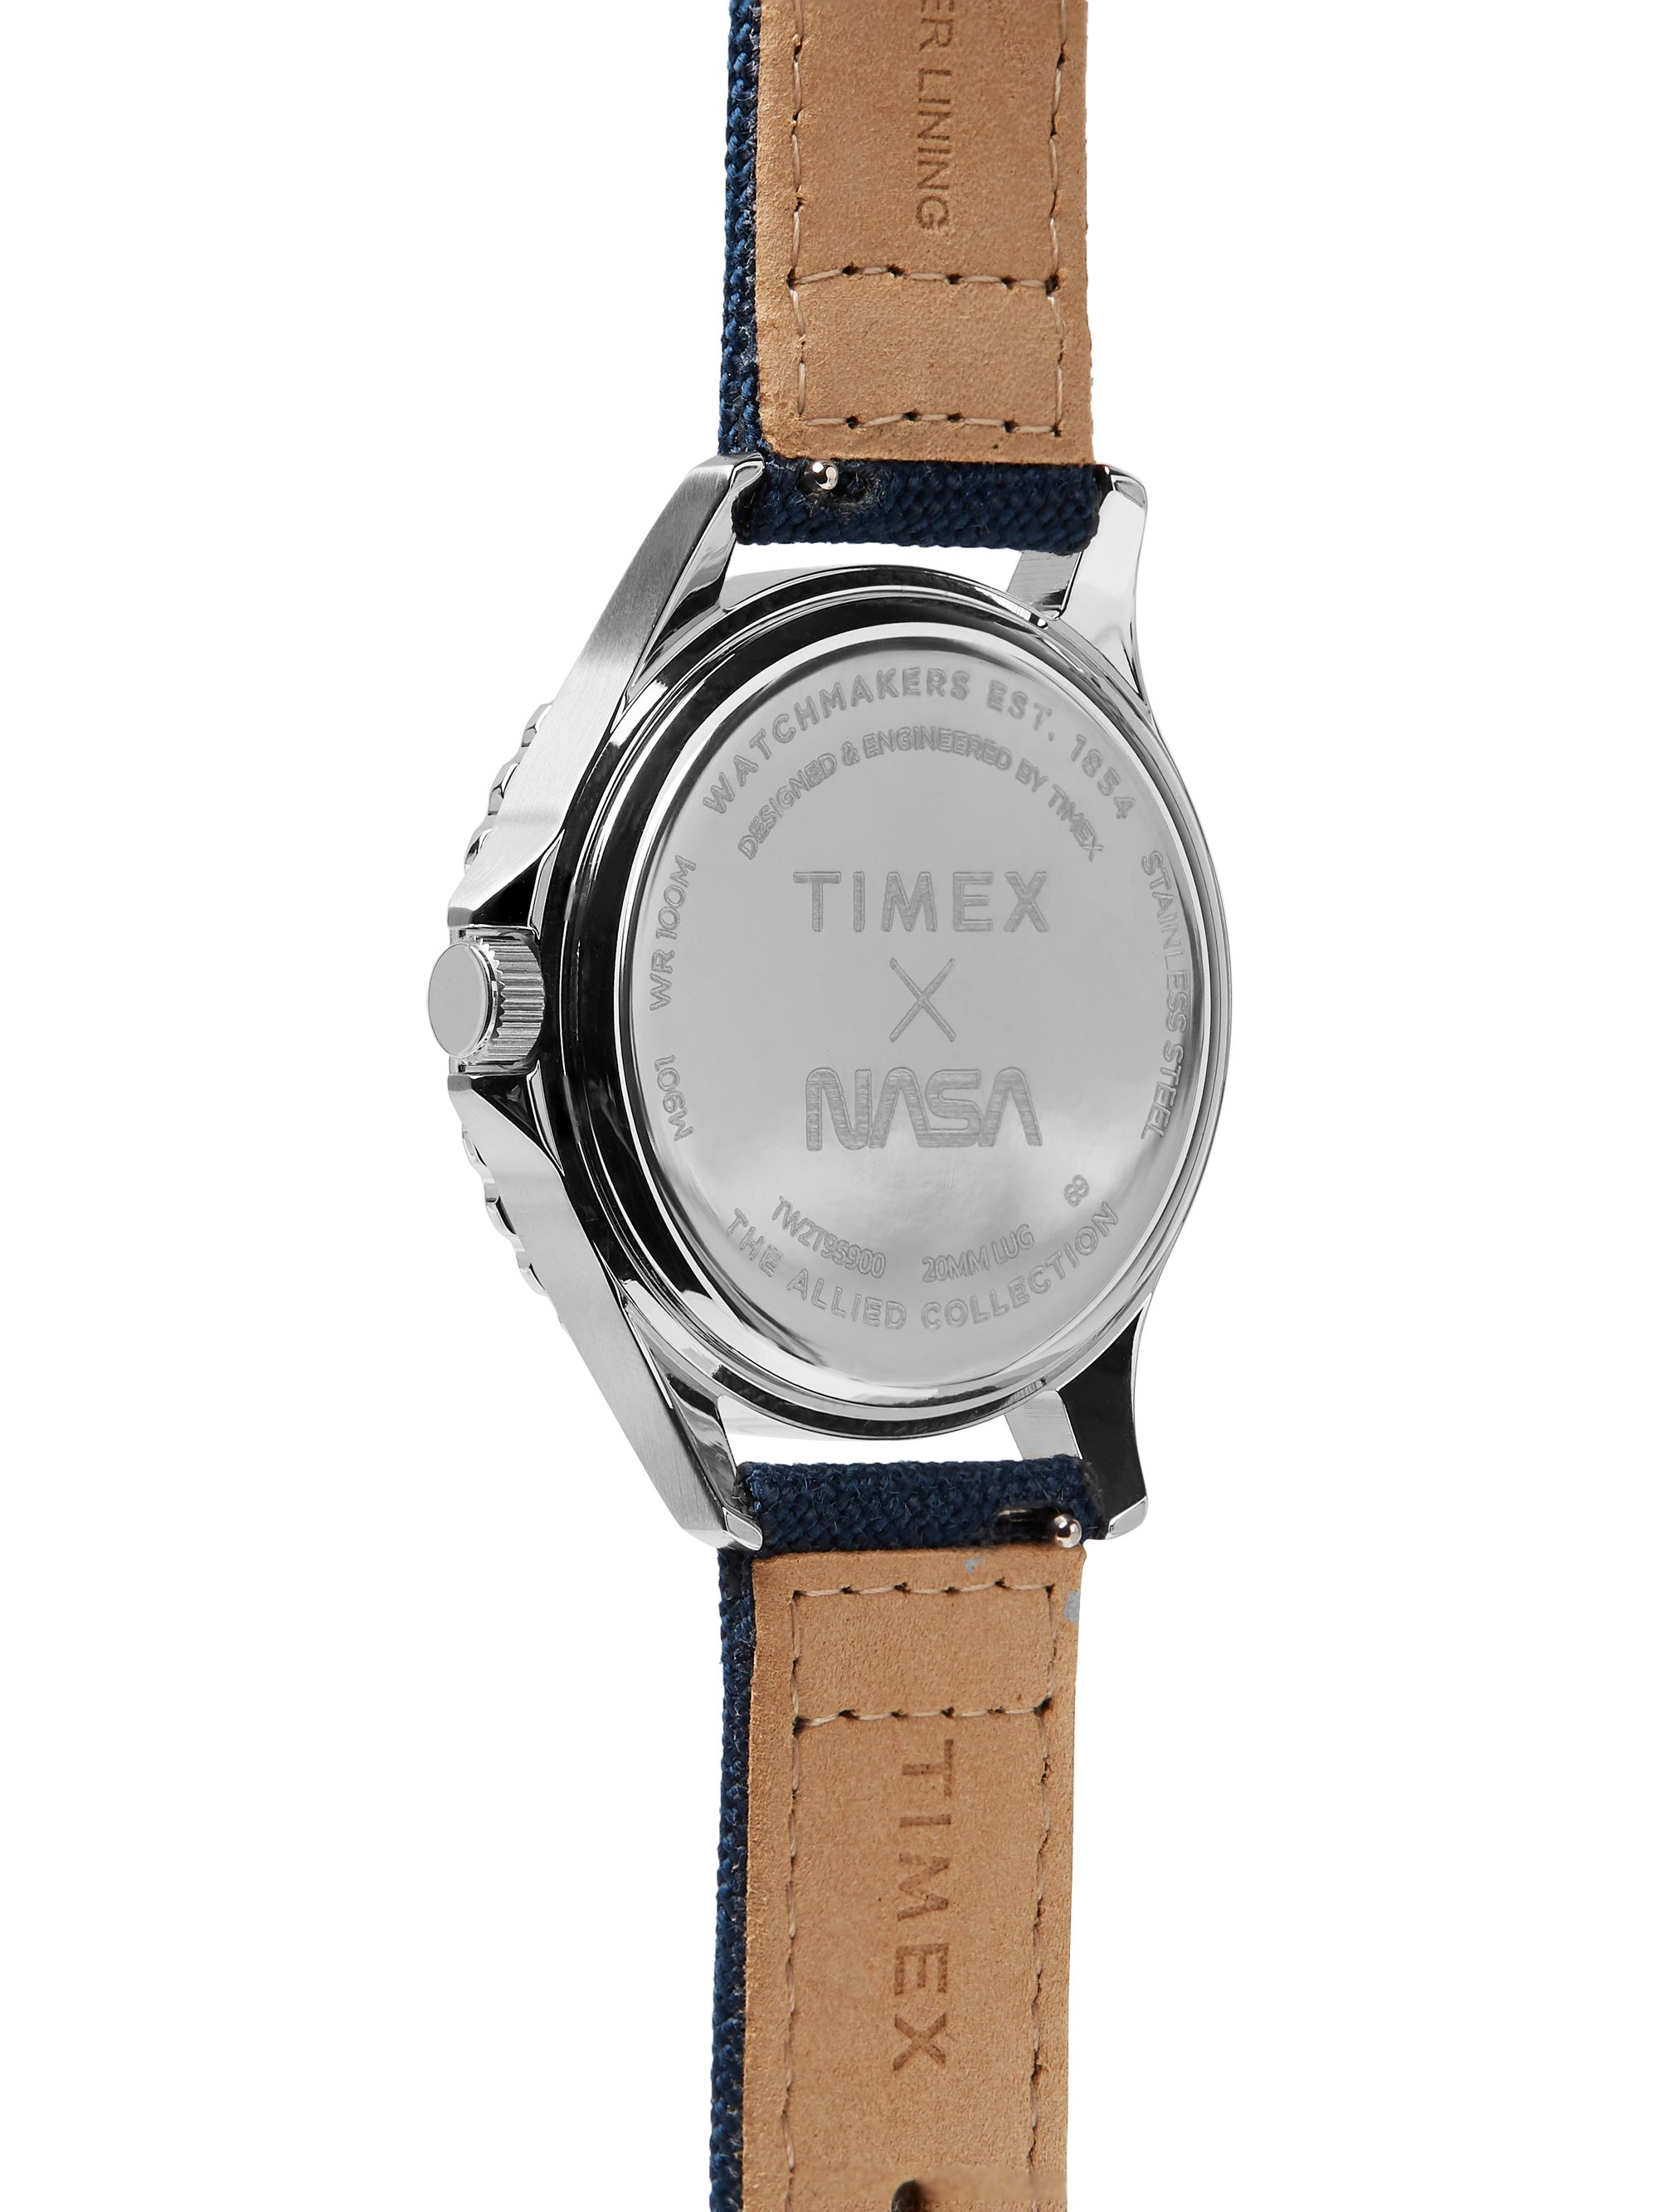 Timex + NASA Navi XL 41mm Stainless Steel and Canvas Watch